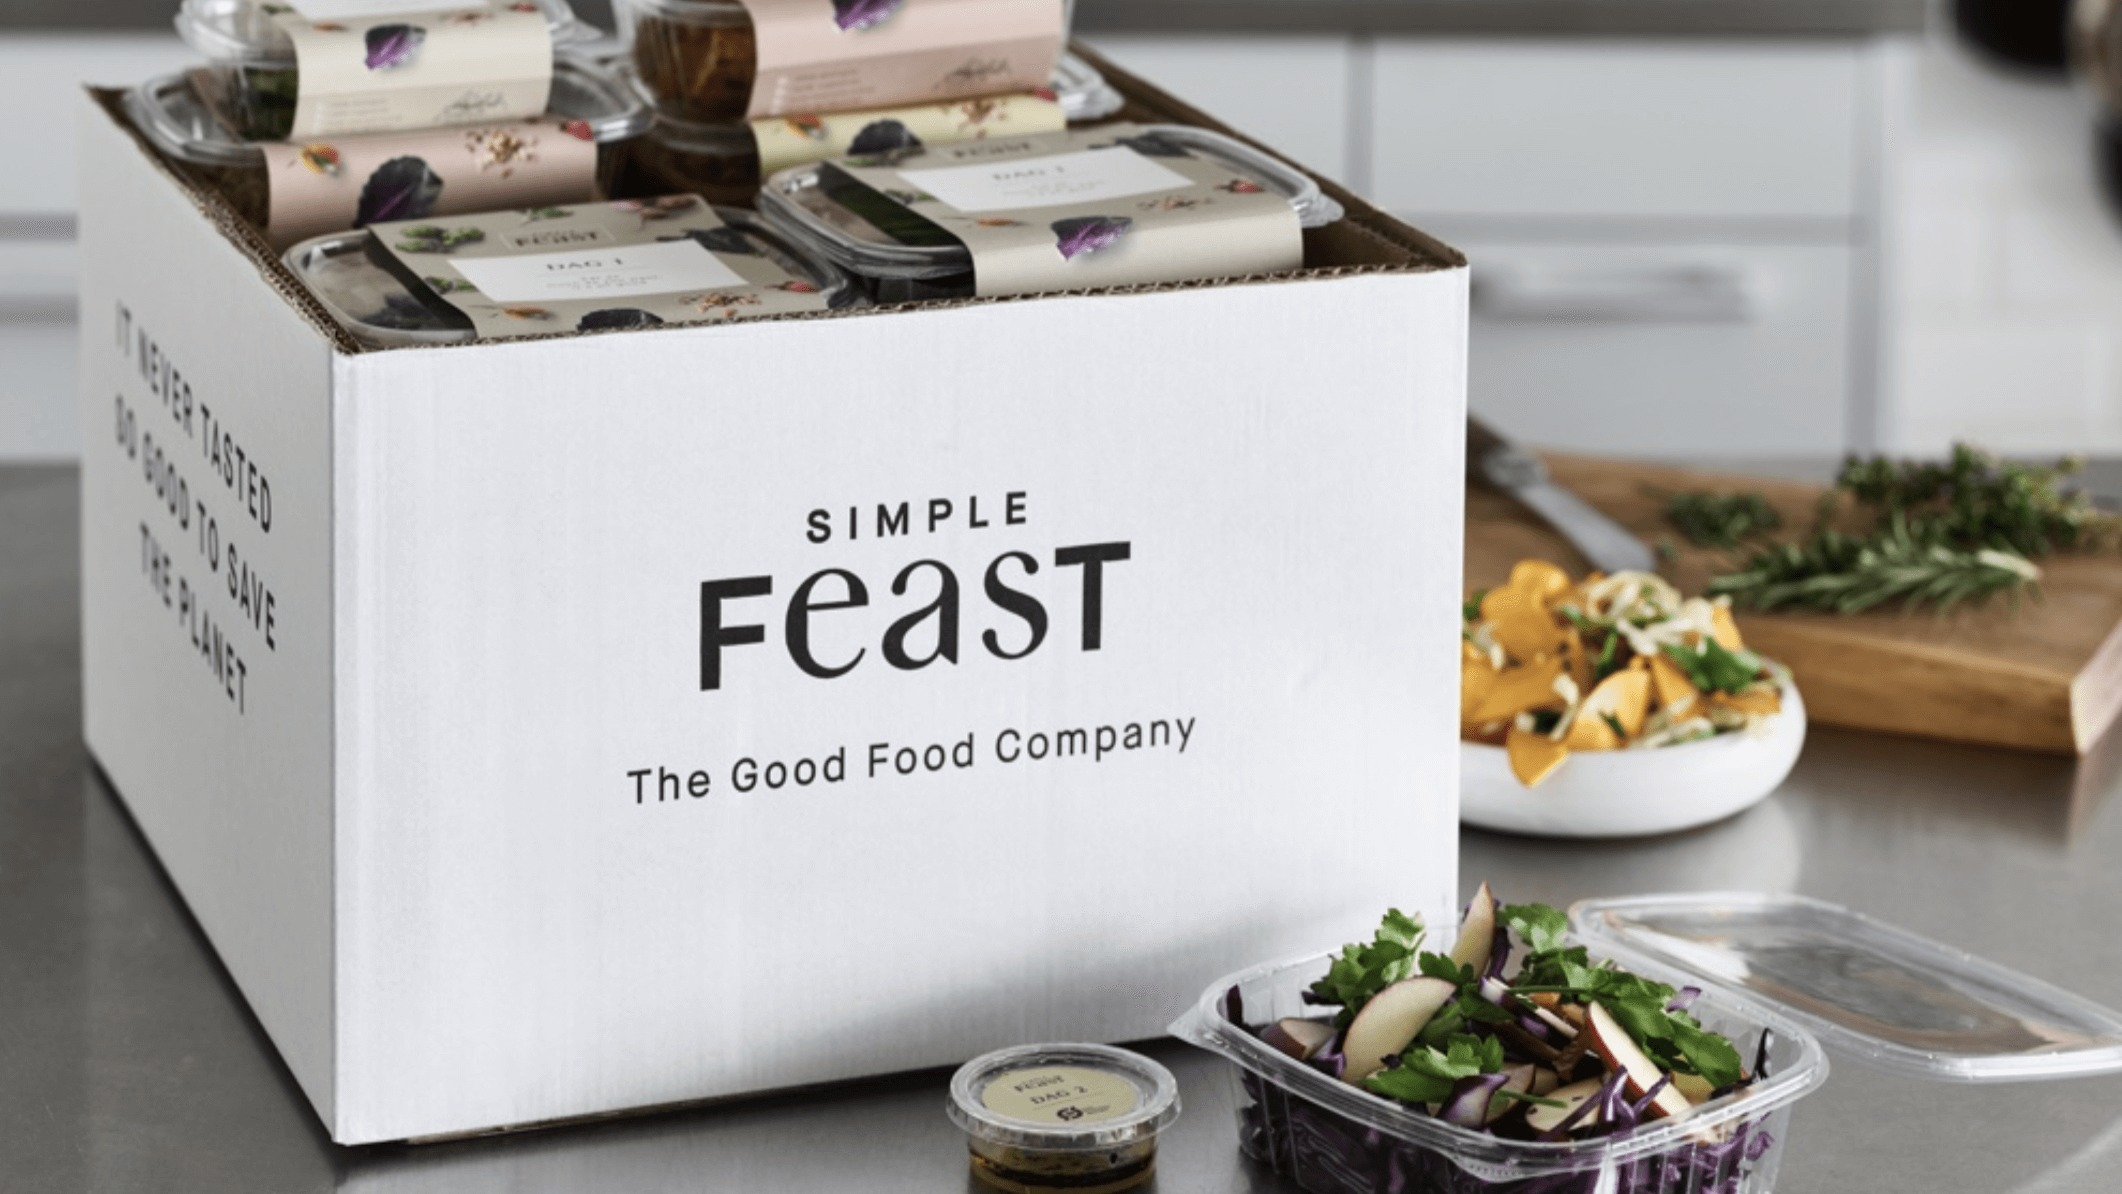 Danish Company Raises $12M to Expand Vegan Meal Delivery Service